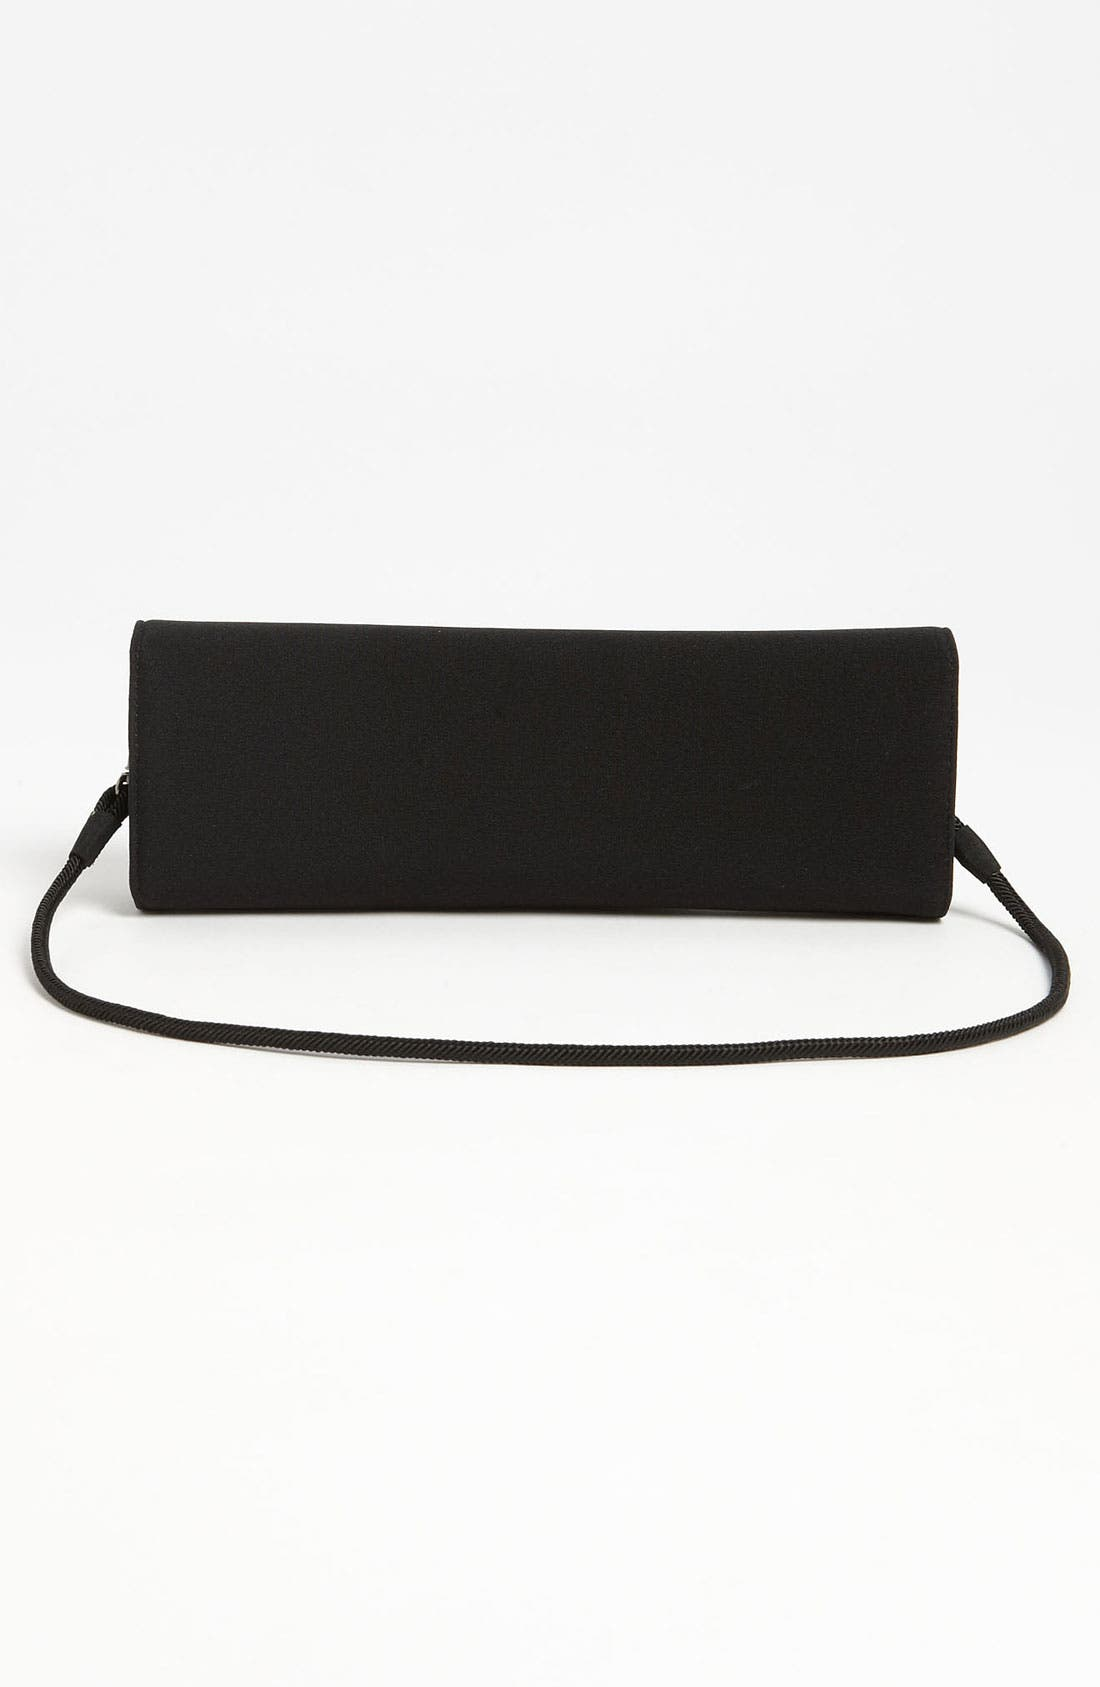 Alternate Image 3  - Stuart Weitzman 'Tahoe' Clutch